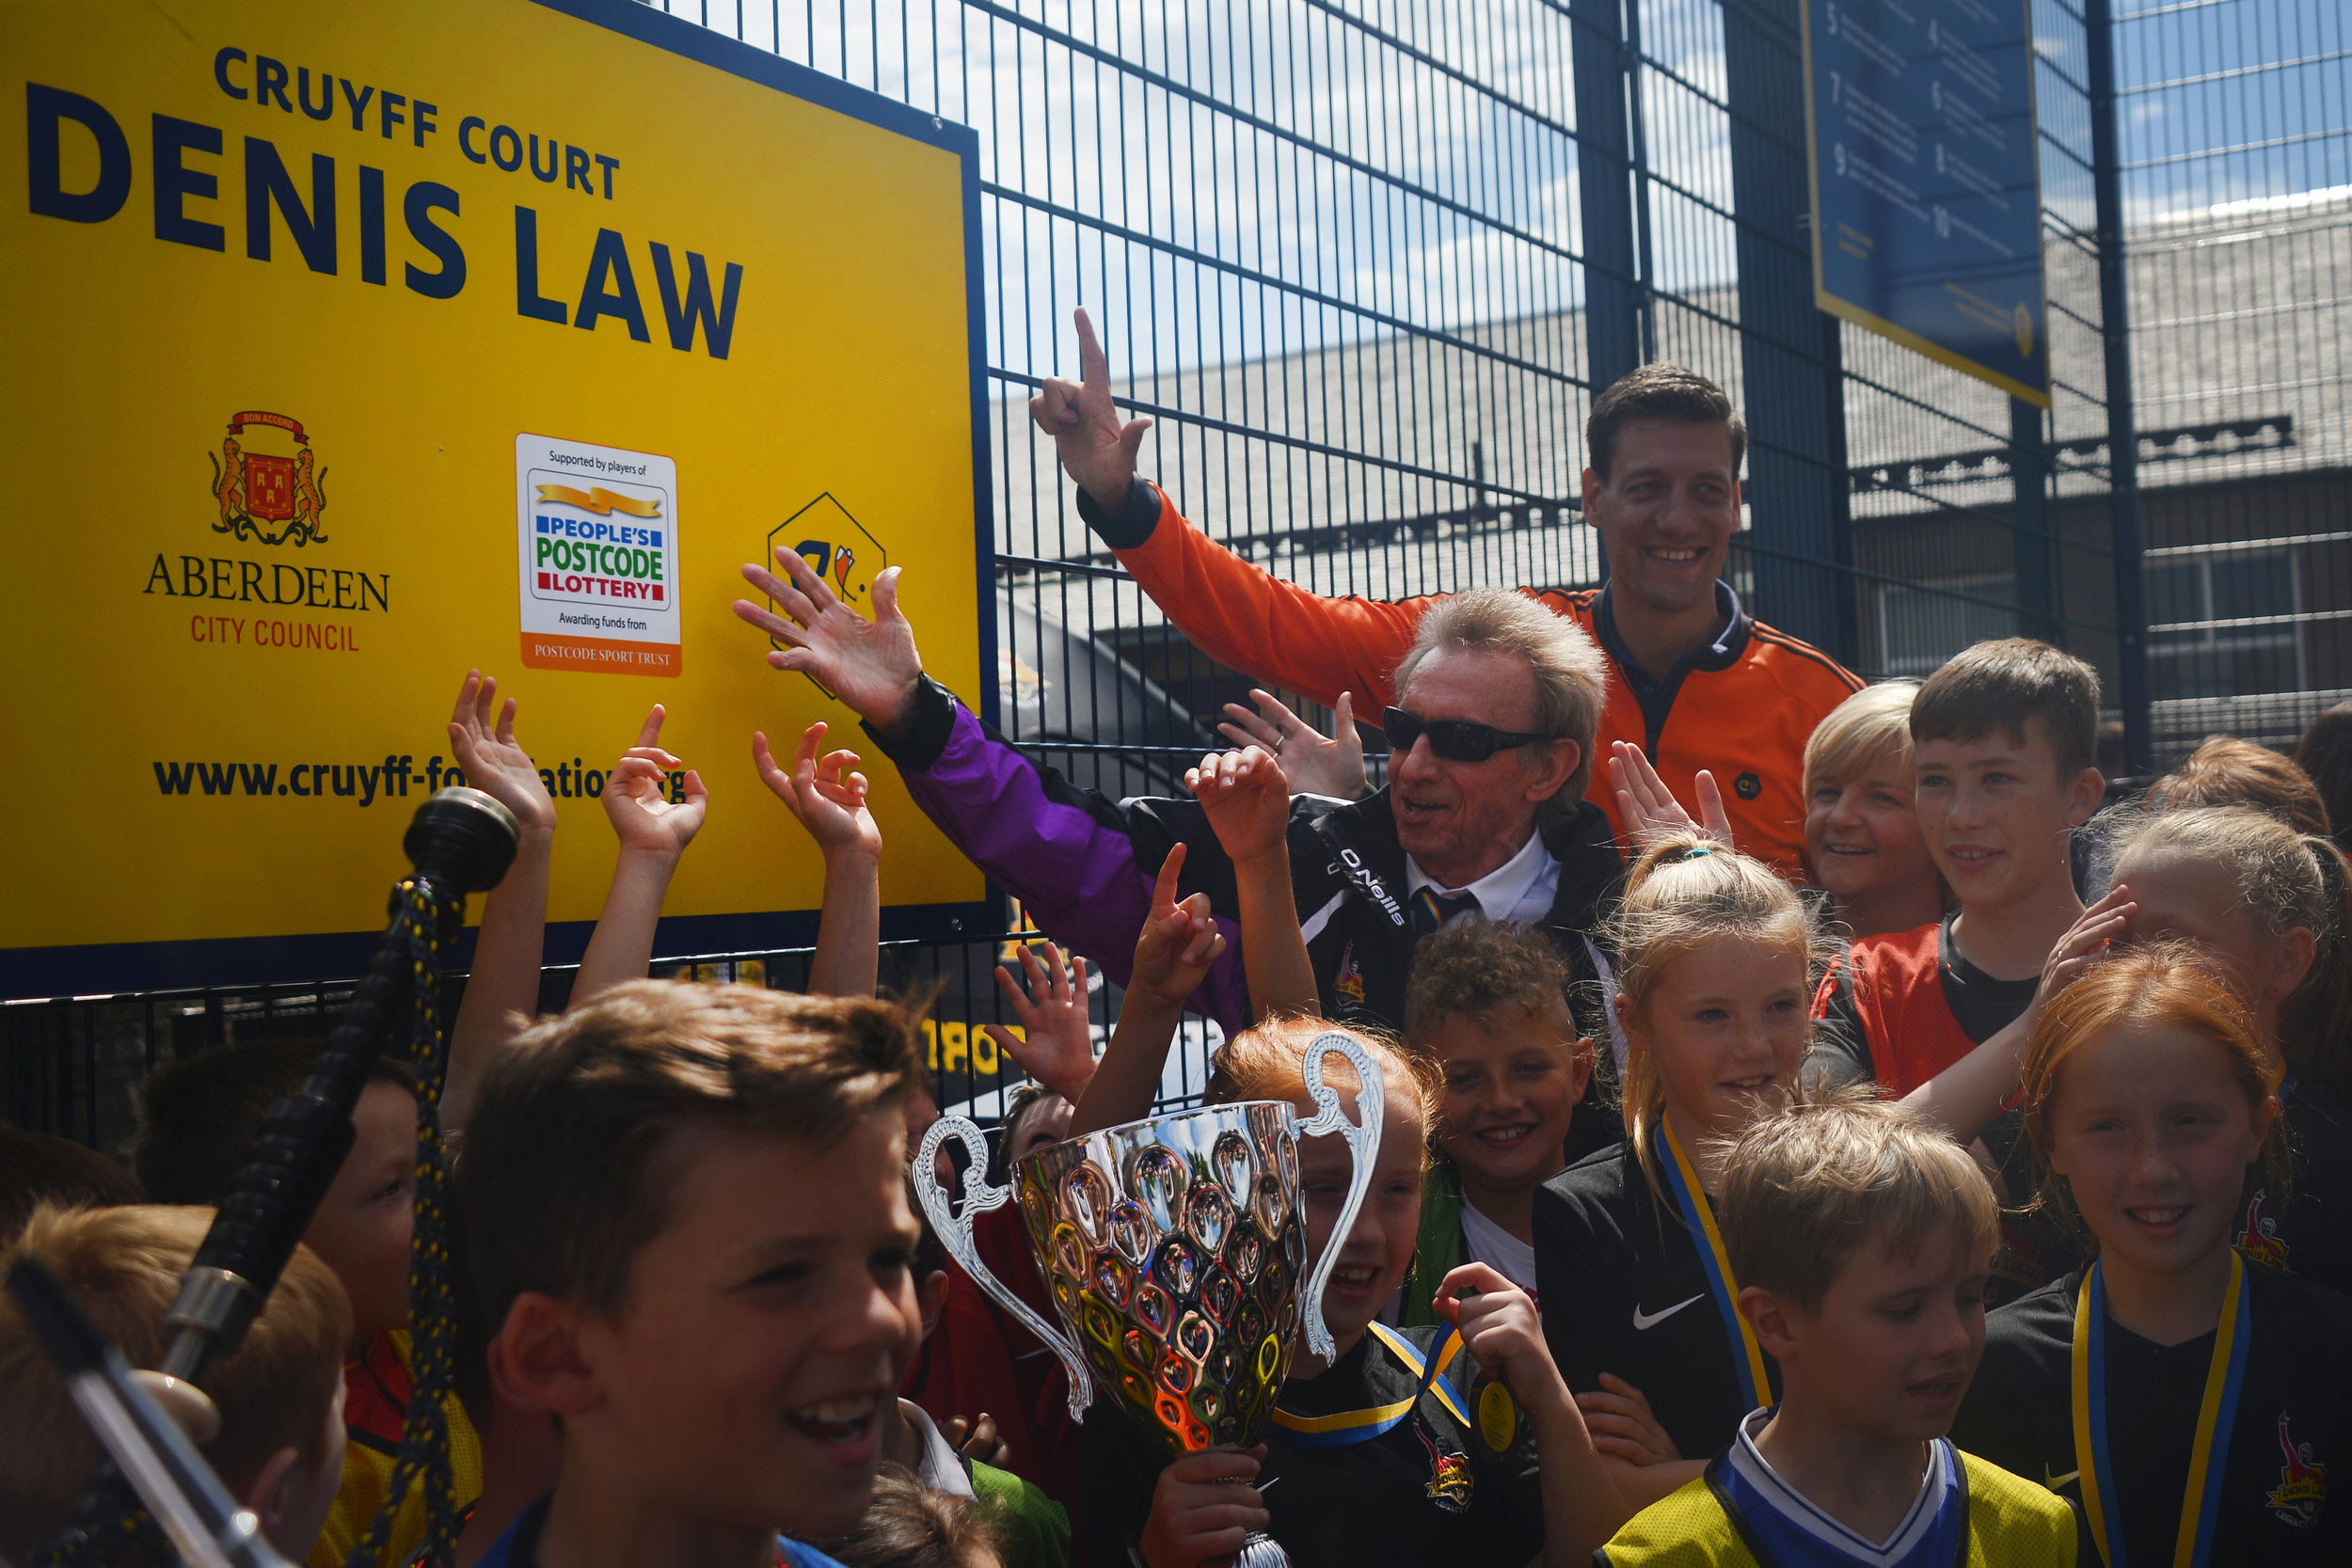 Kirstin also assisted in the official opening of the Cruyff Court Denis Law, situated on Catherine St in the heart of Aberdeen.